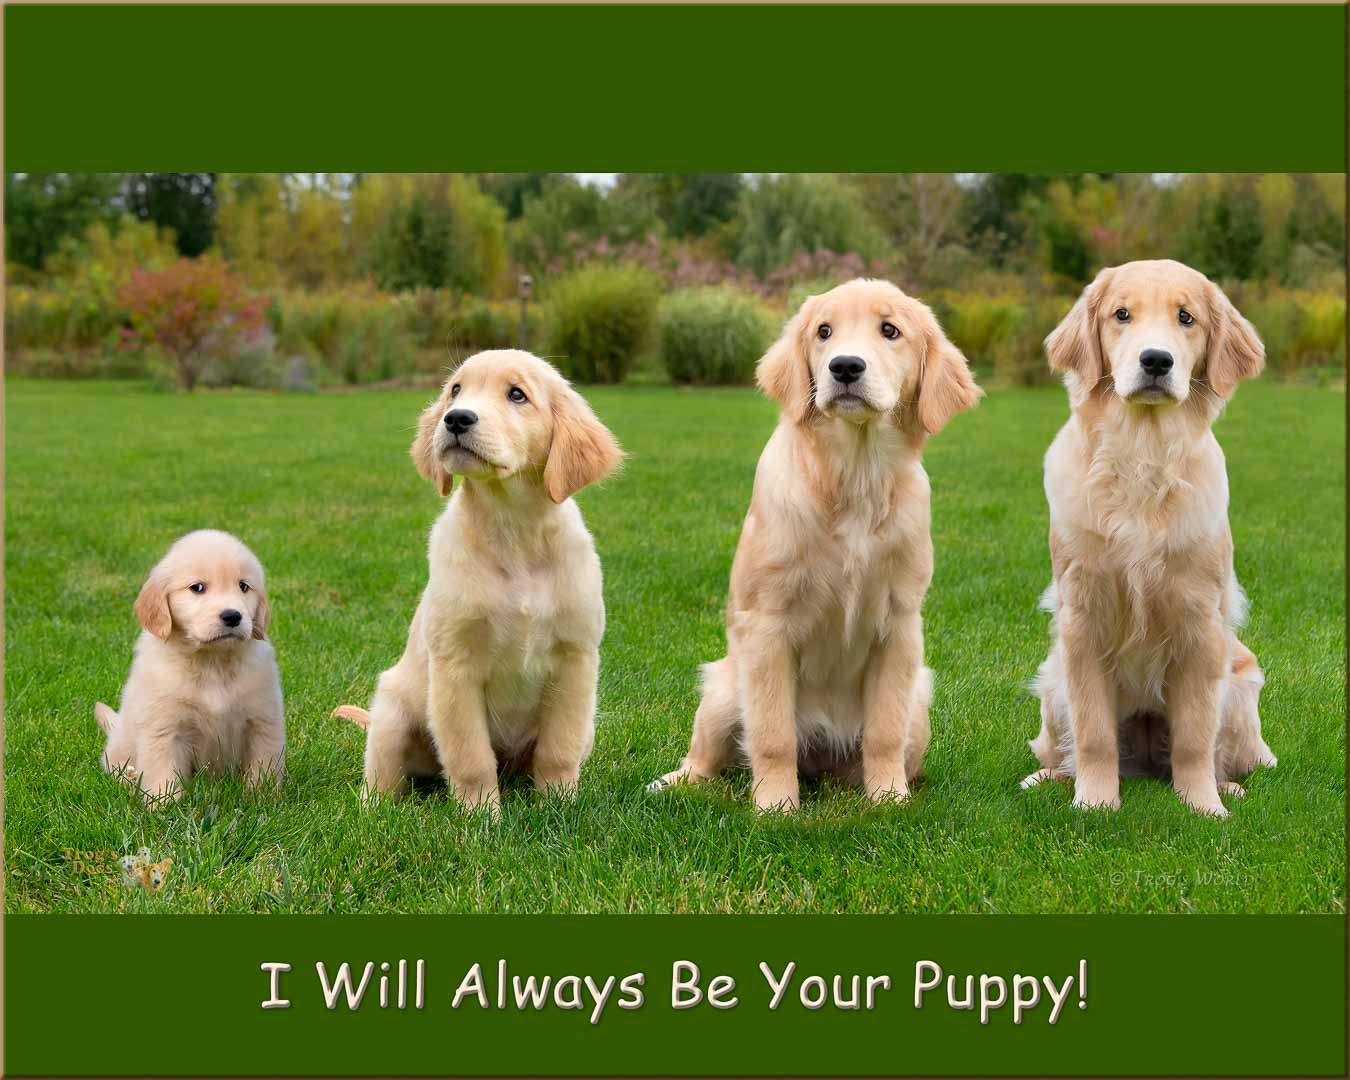 Montage showing growth of a golden retriever puppy